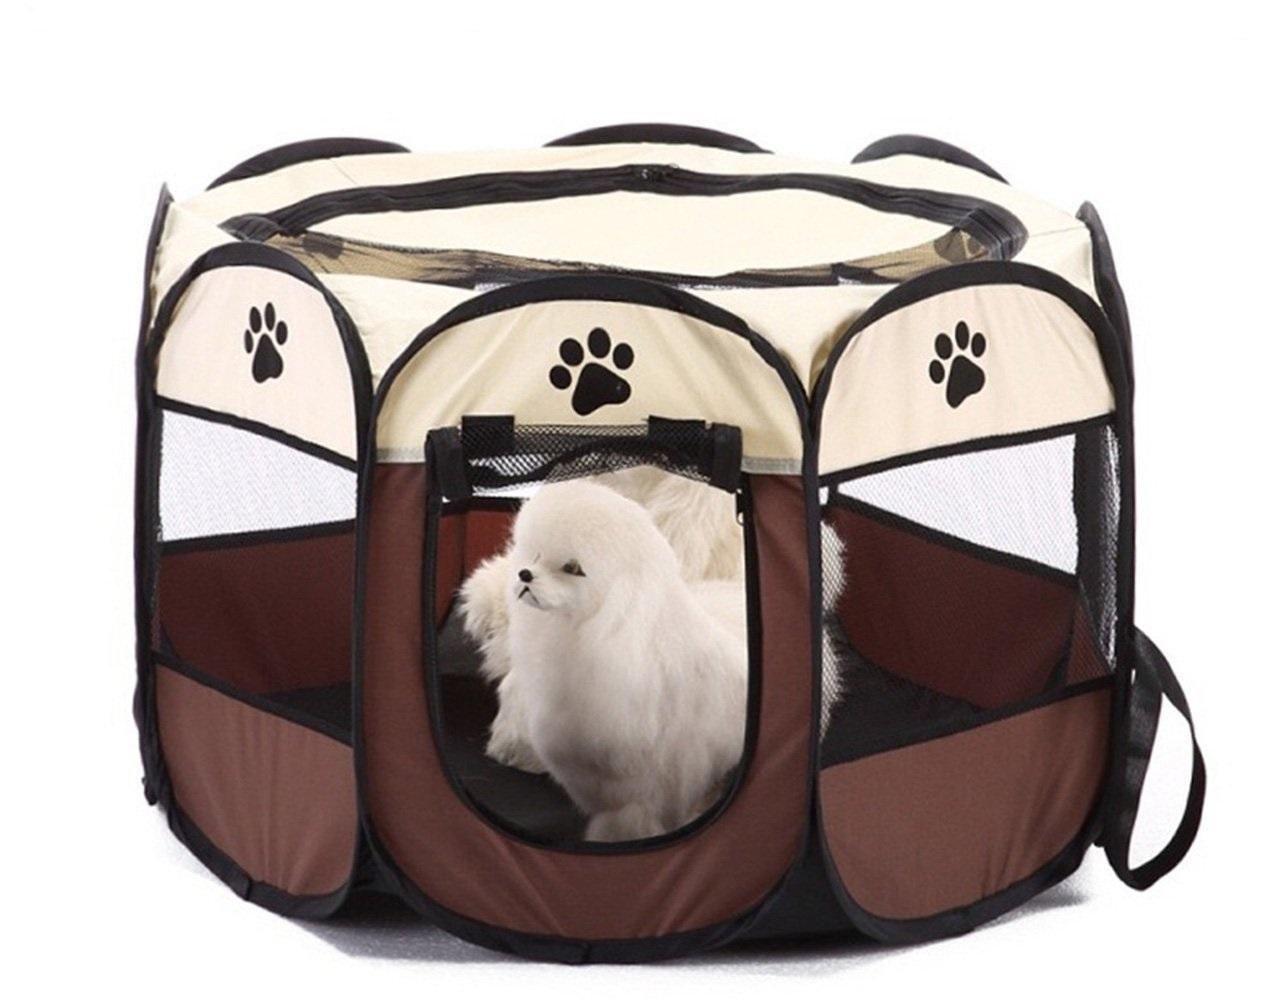 Pet Dog Cat Portable Foldable Folding Pet Carrier Tent Fabric House Playpen Crate Cage Kennel Tent Outdoor Indoor Fence house